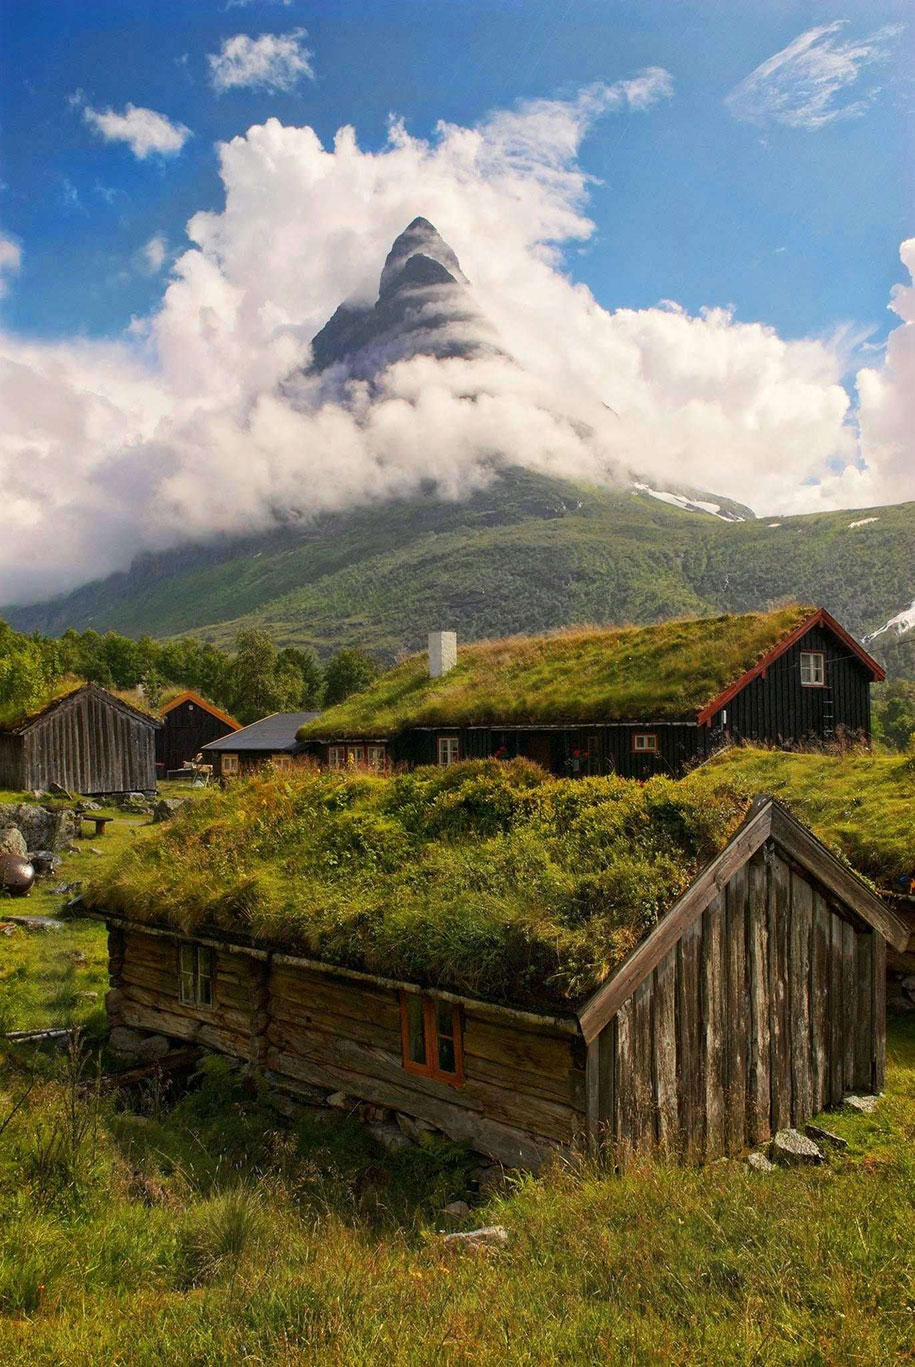 fairytale-photos-nature-architecture-buildings-norway-24